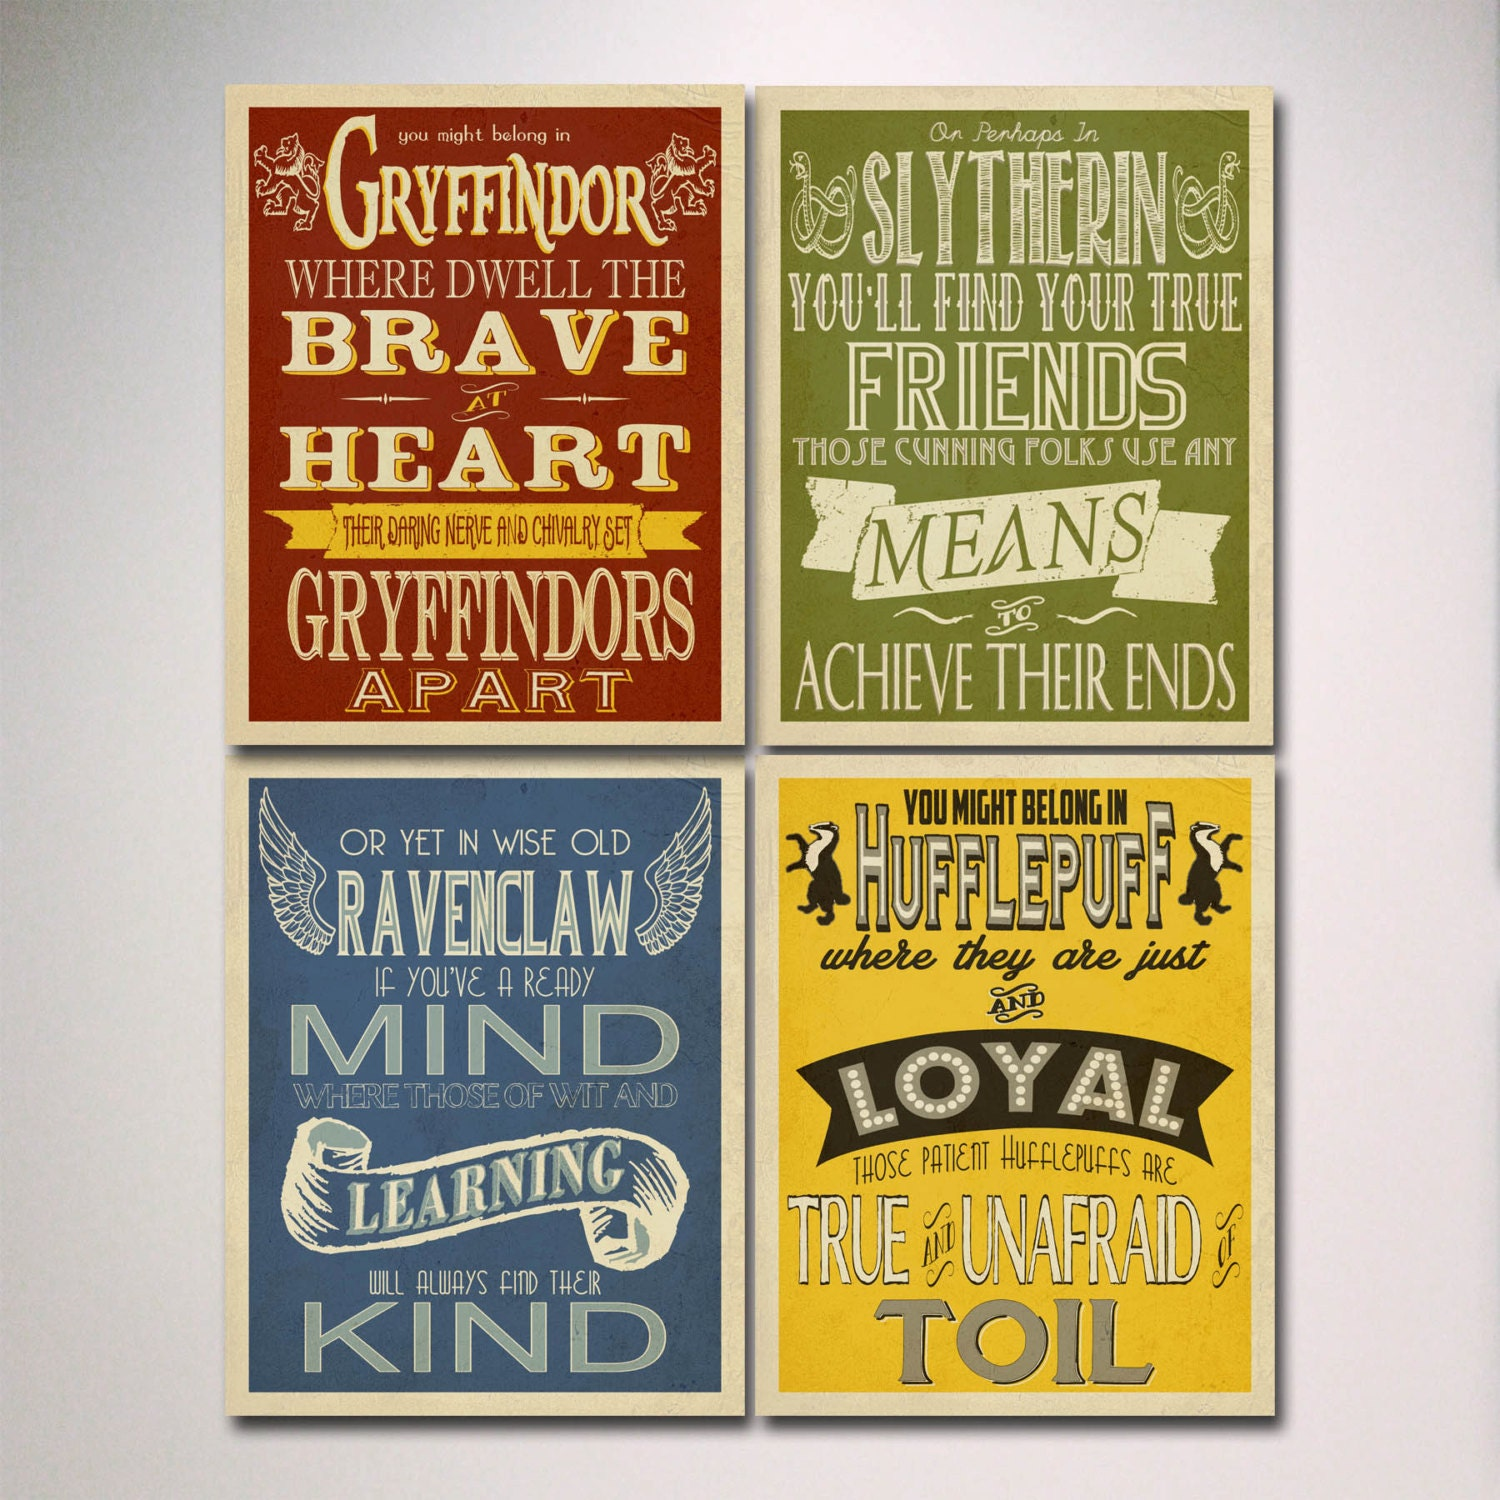 Which Hogwarts How Do You Belong To: Harry Potter House Posters Prints / Hogwarts Houses Prints